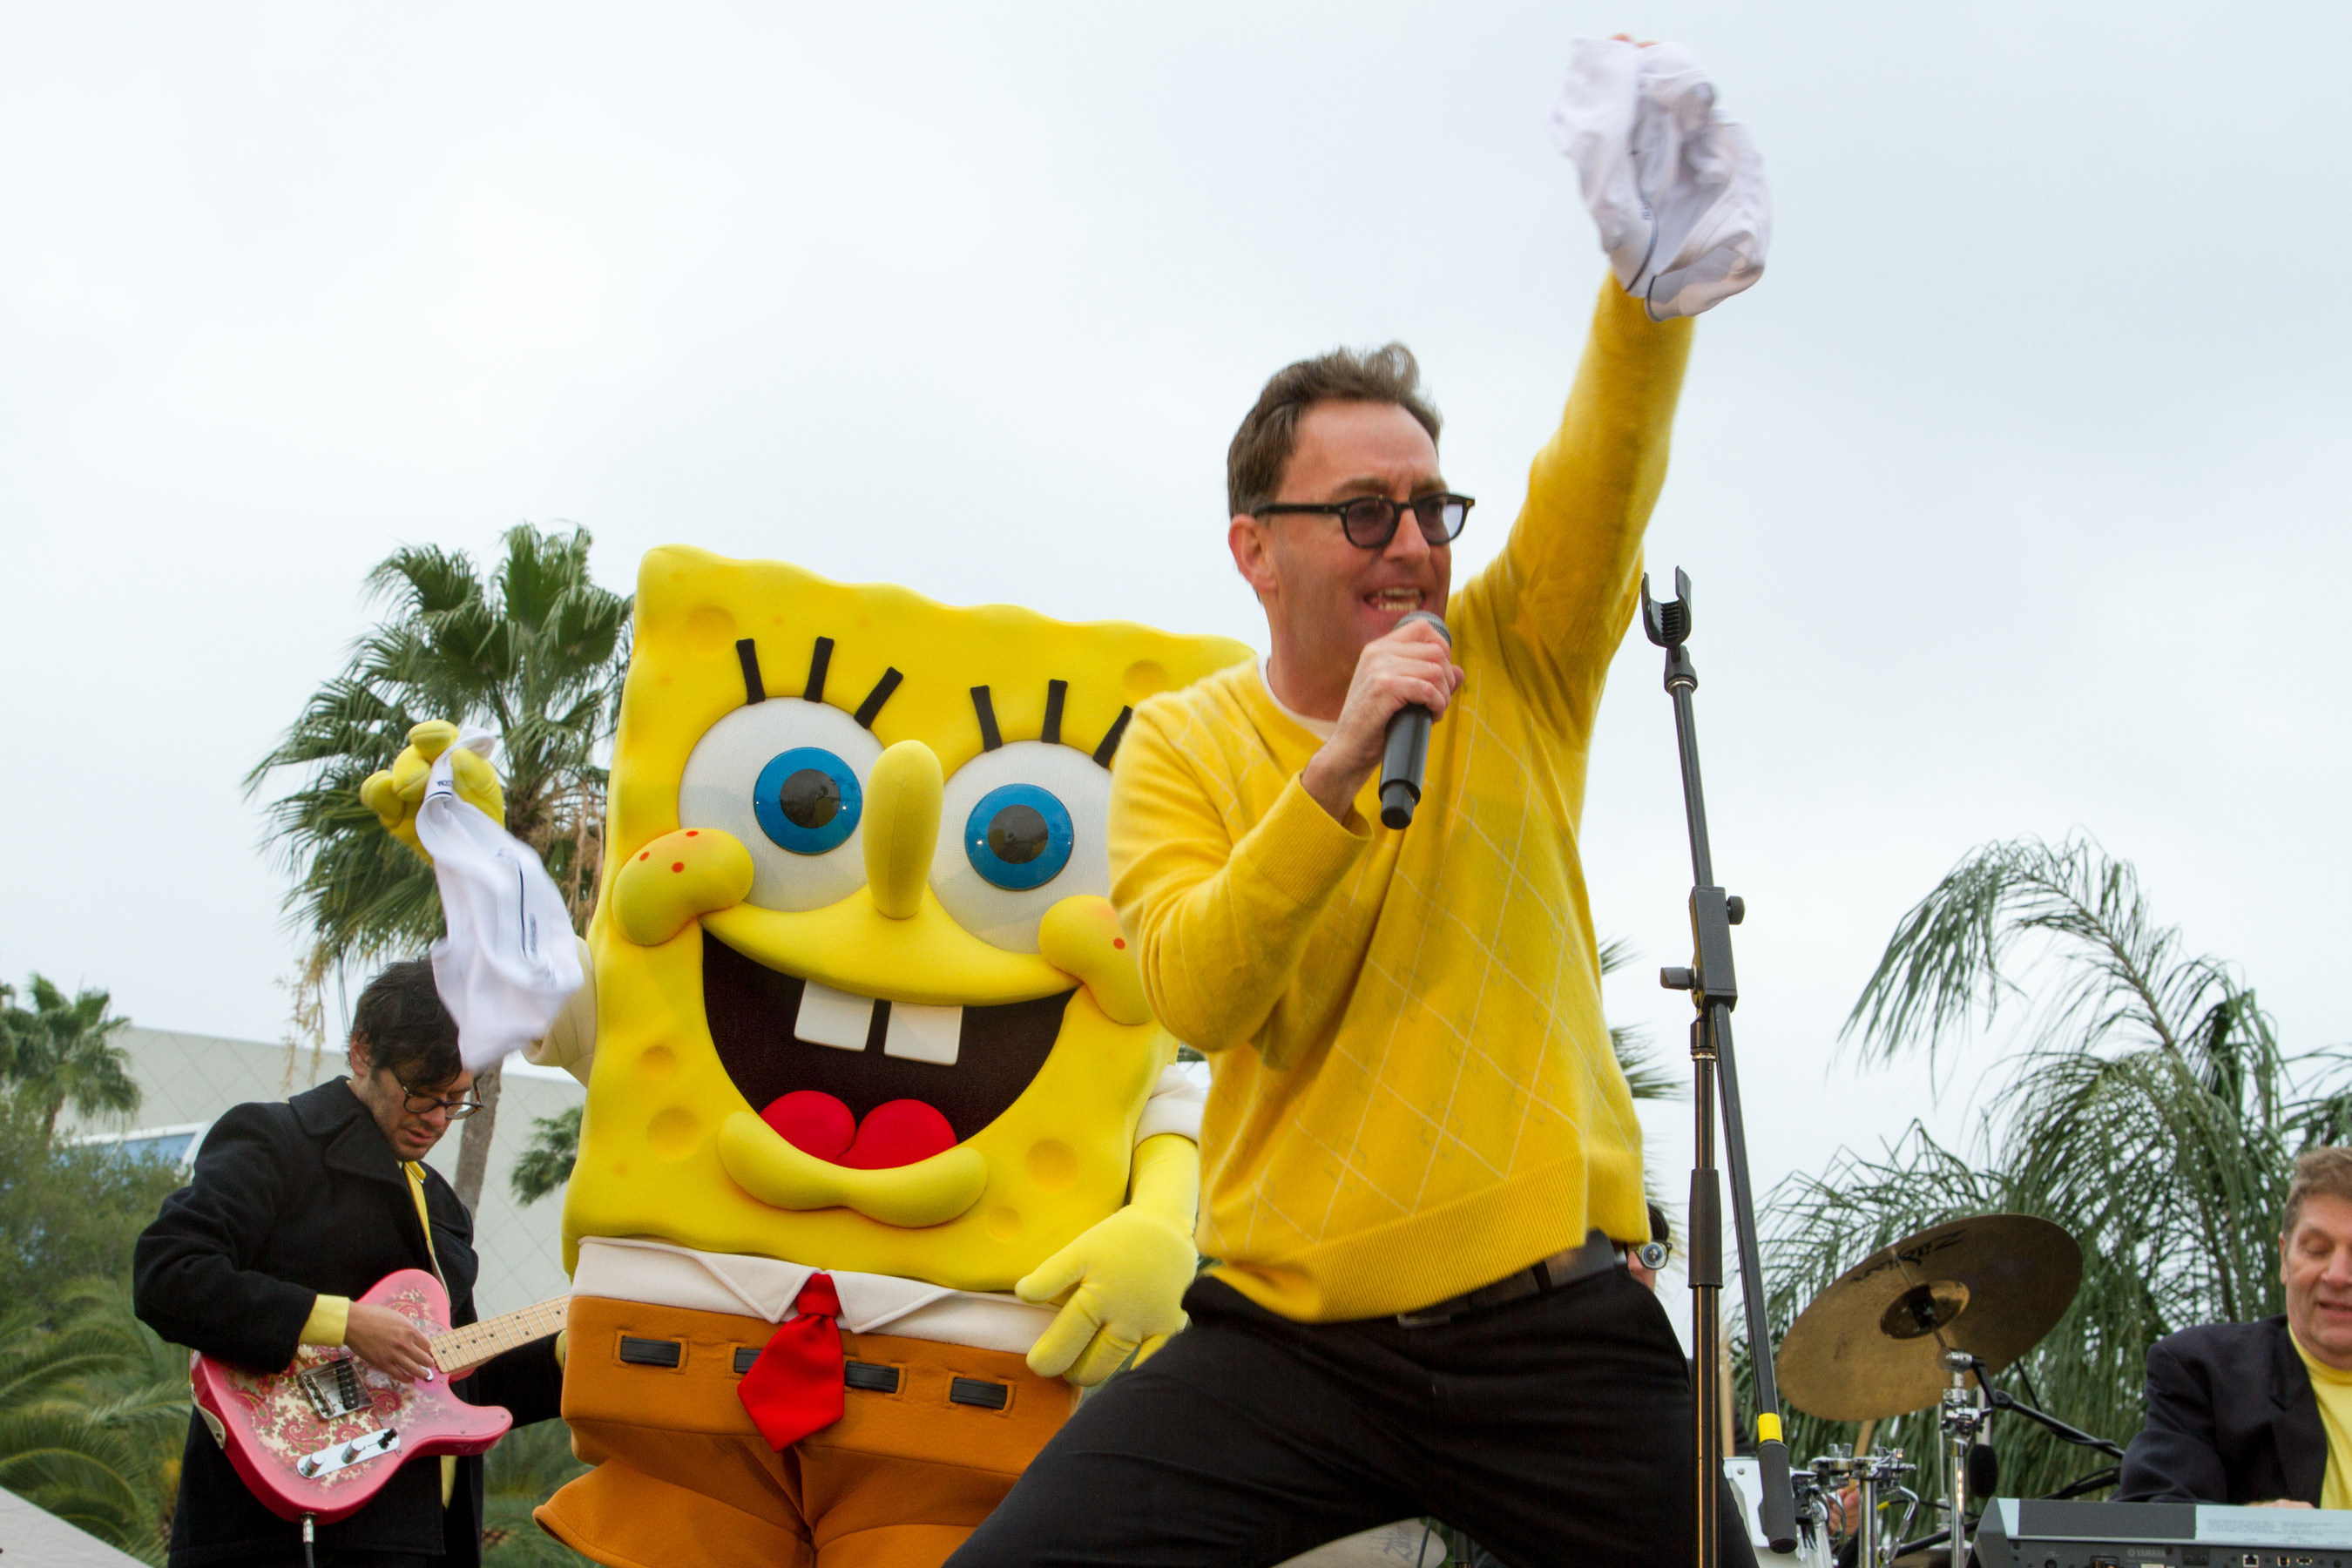 Tom Kenny, the voice of SpongeBob SquarePants and the Hi Seas band performed for an energetic crowd at the ...